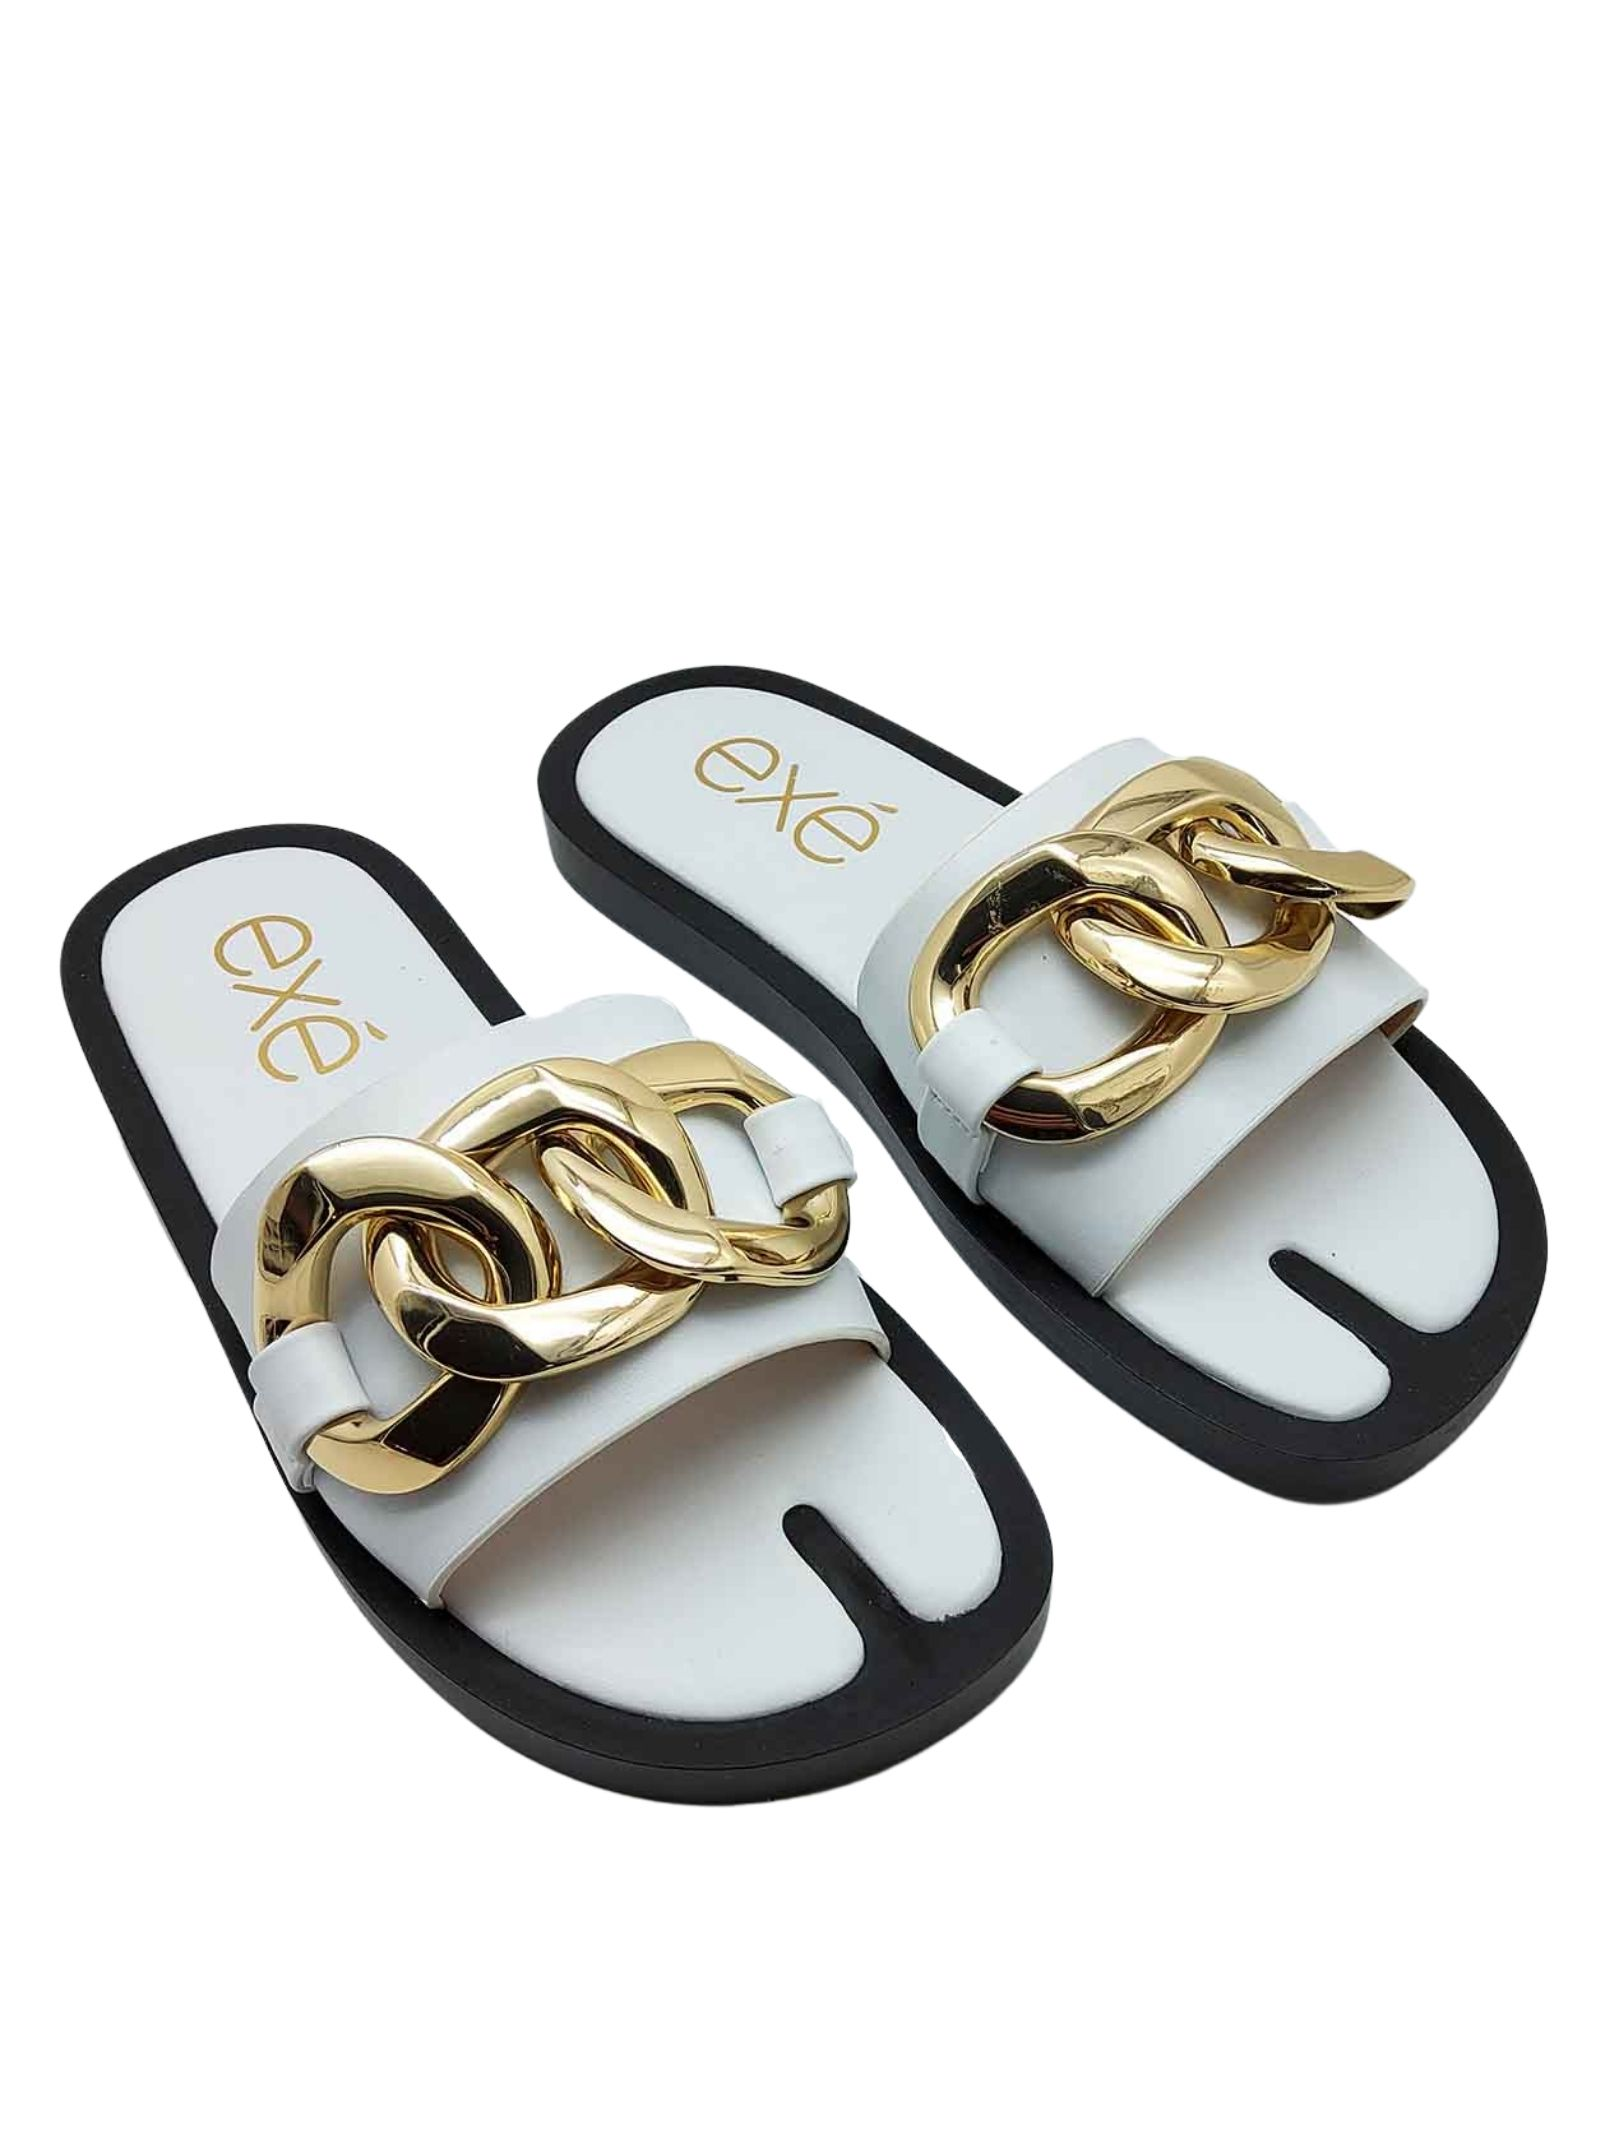 Women's Shoes Sandals in White Eco Leather with Gold Chain and Low Wedge in Black Rubber Exe | Flat sandals | 273100